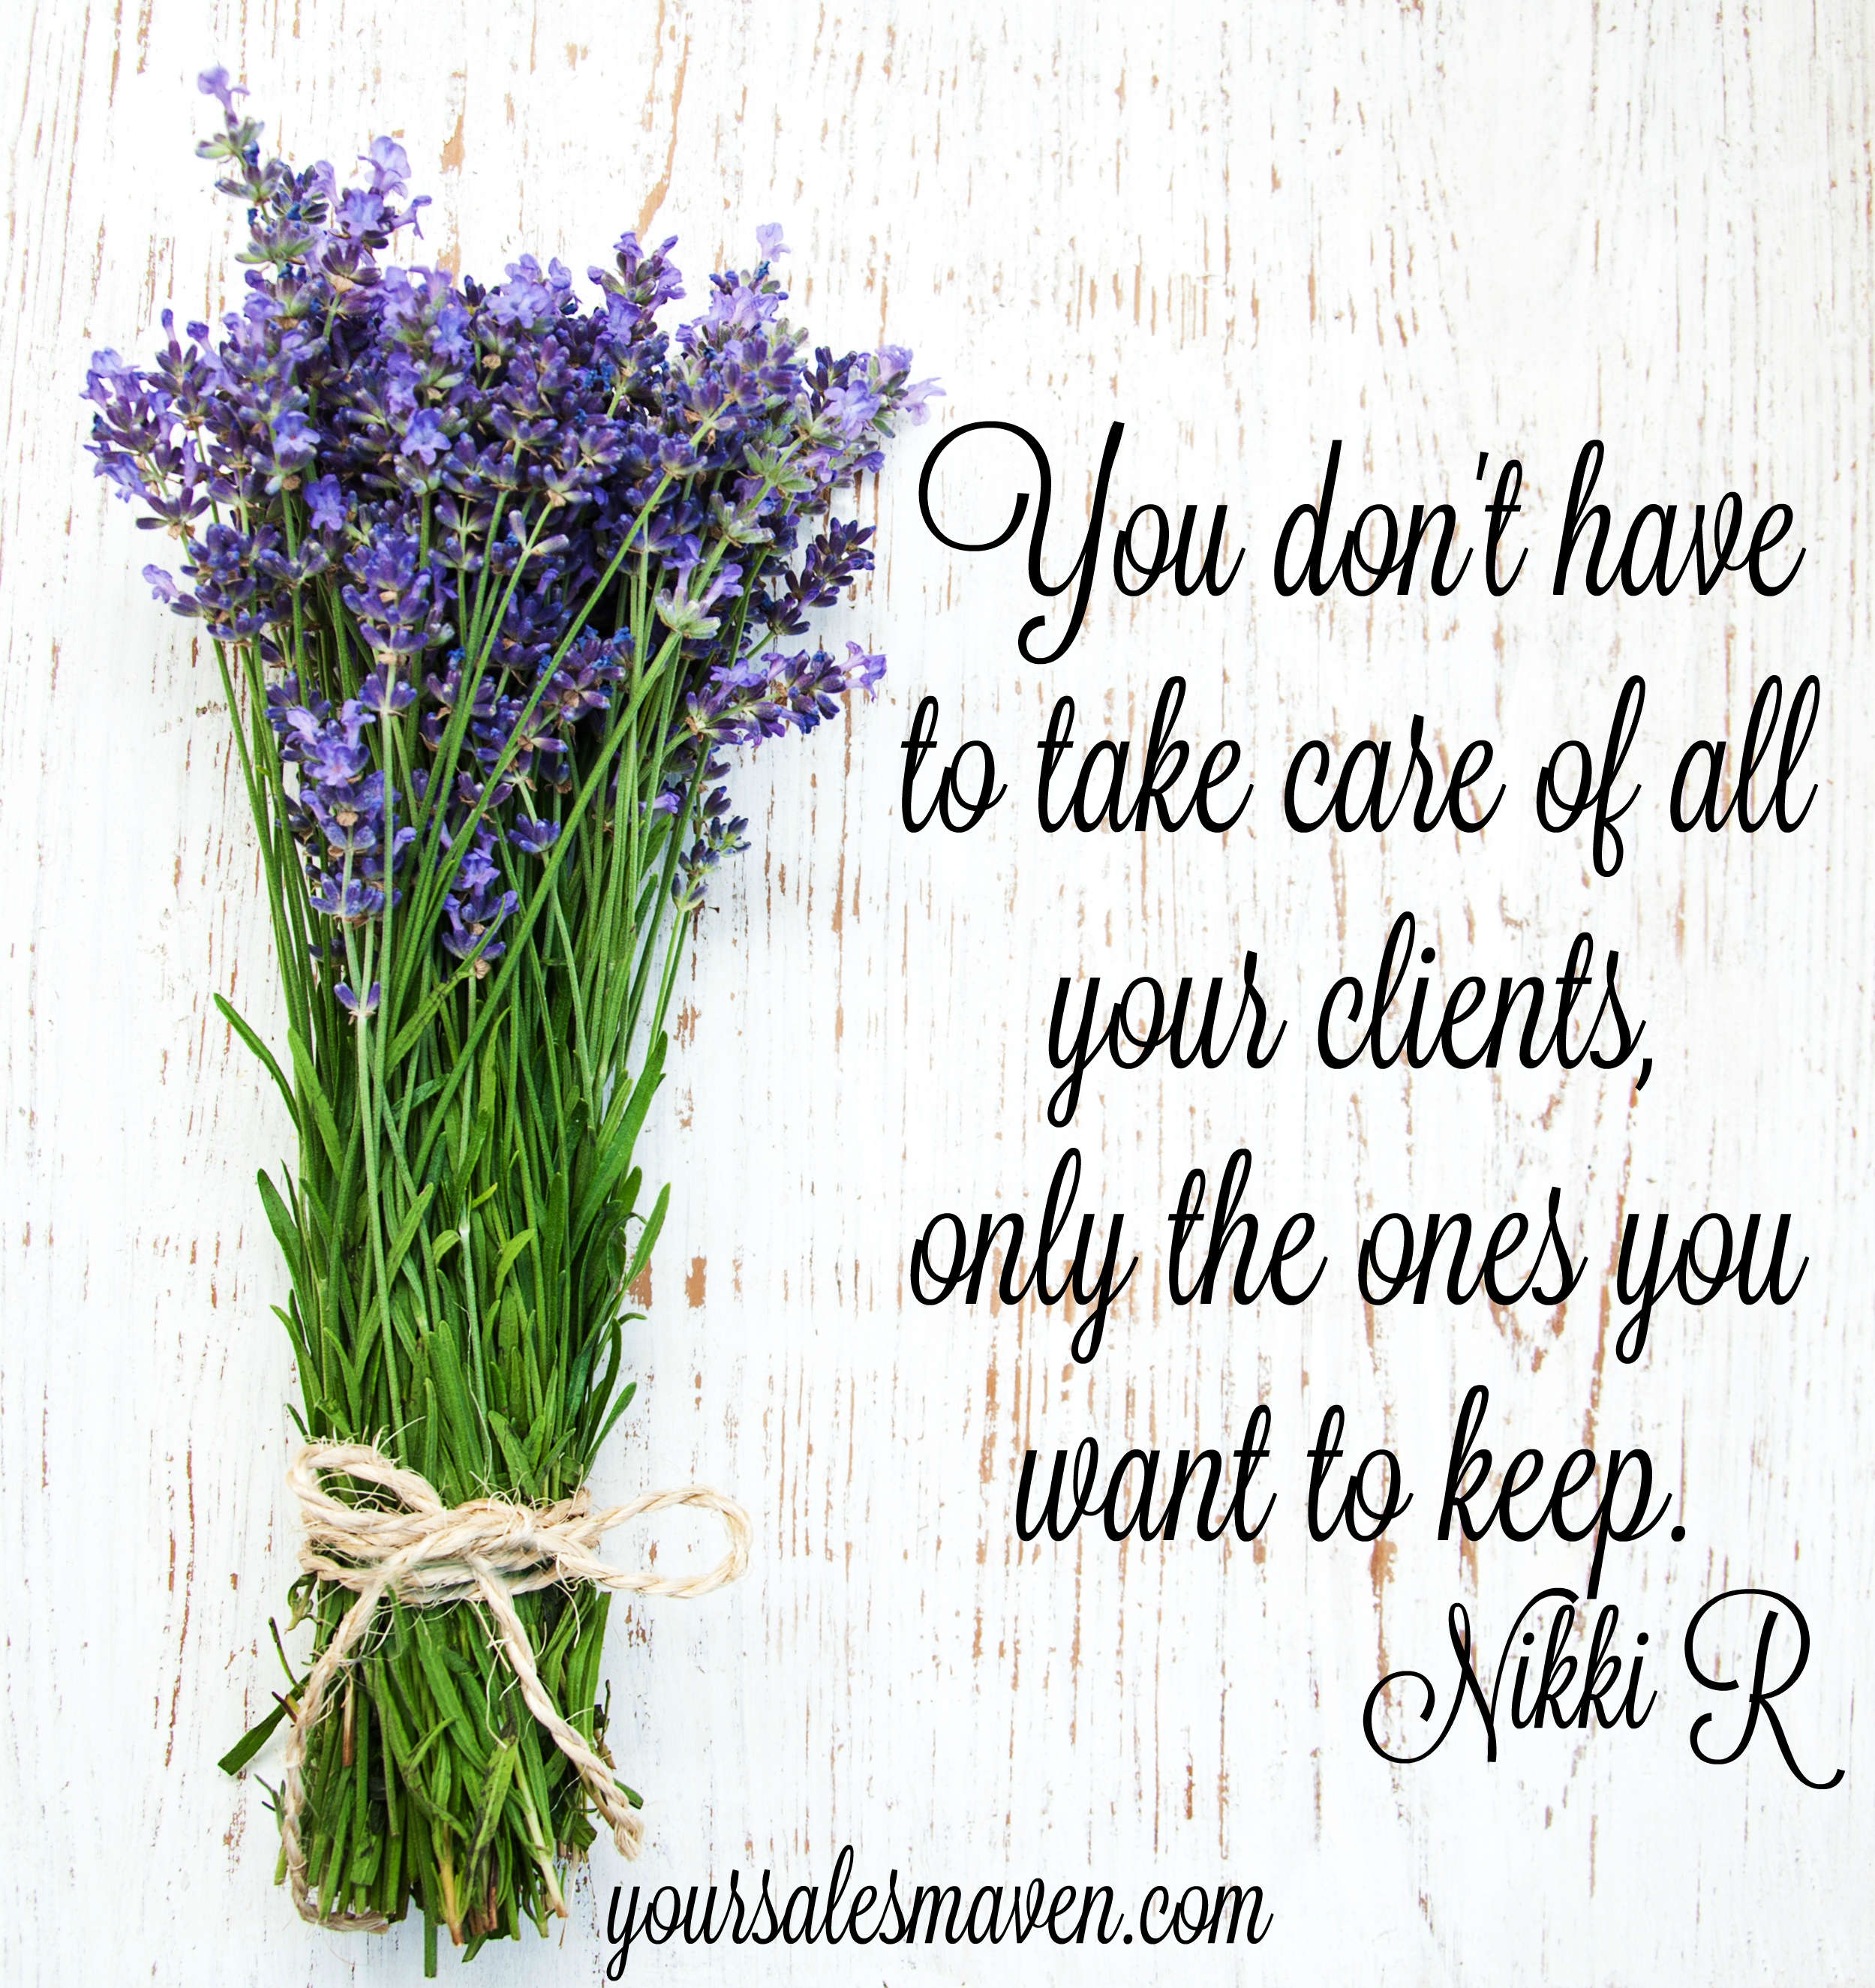 The Clients You Should Focus On